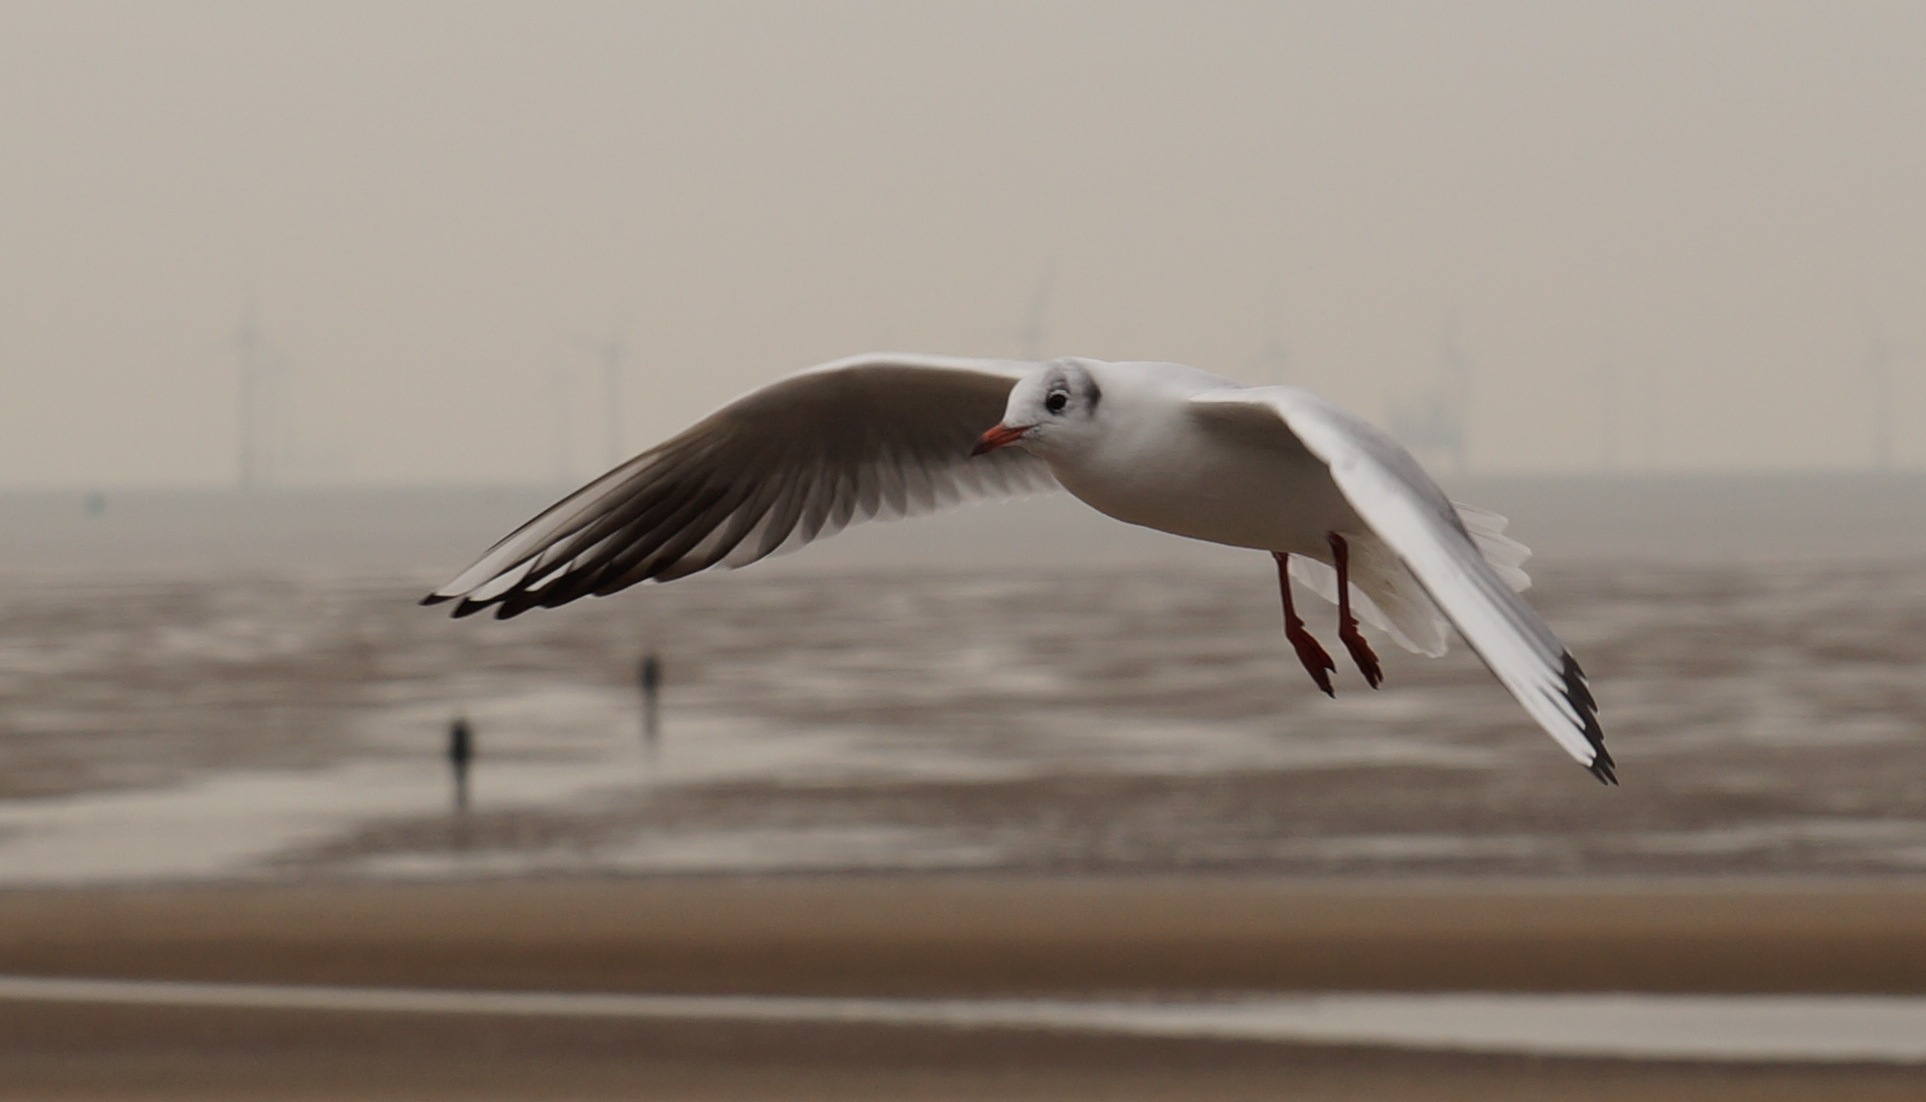 Another Seagull by Steve Smith